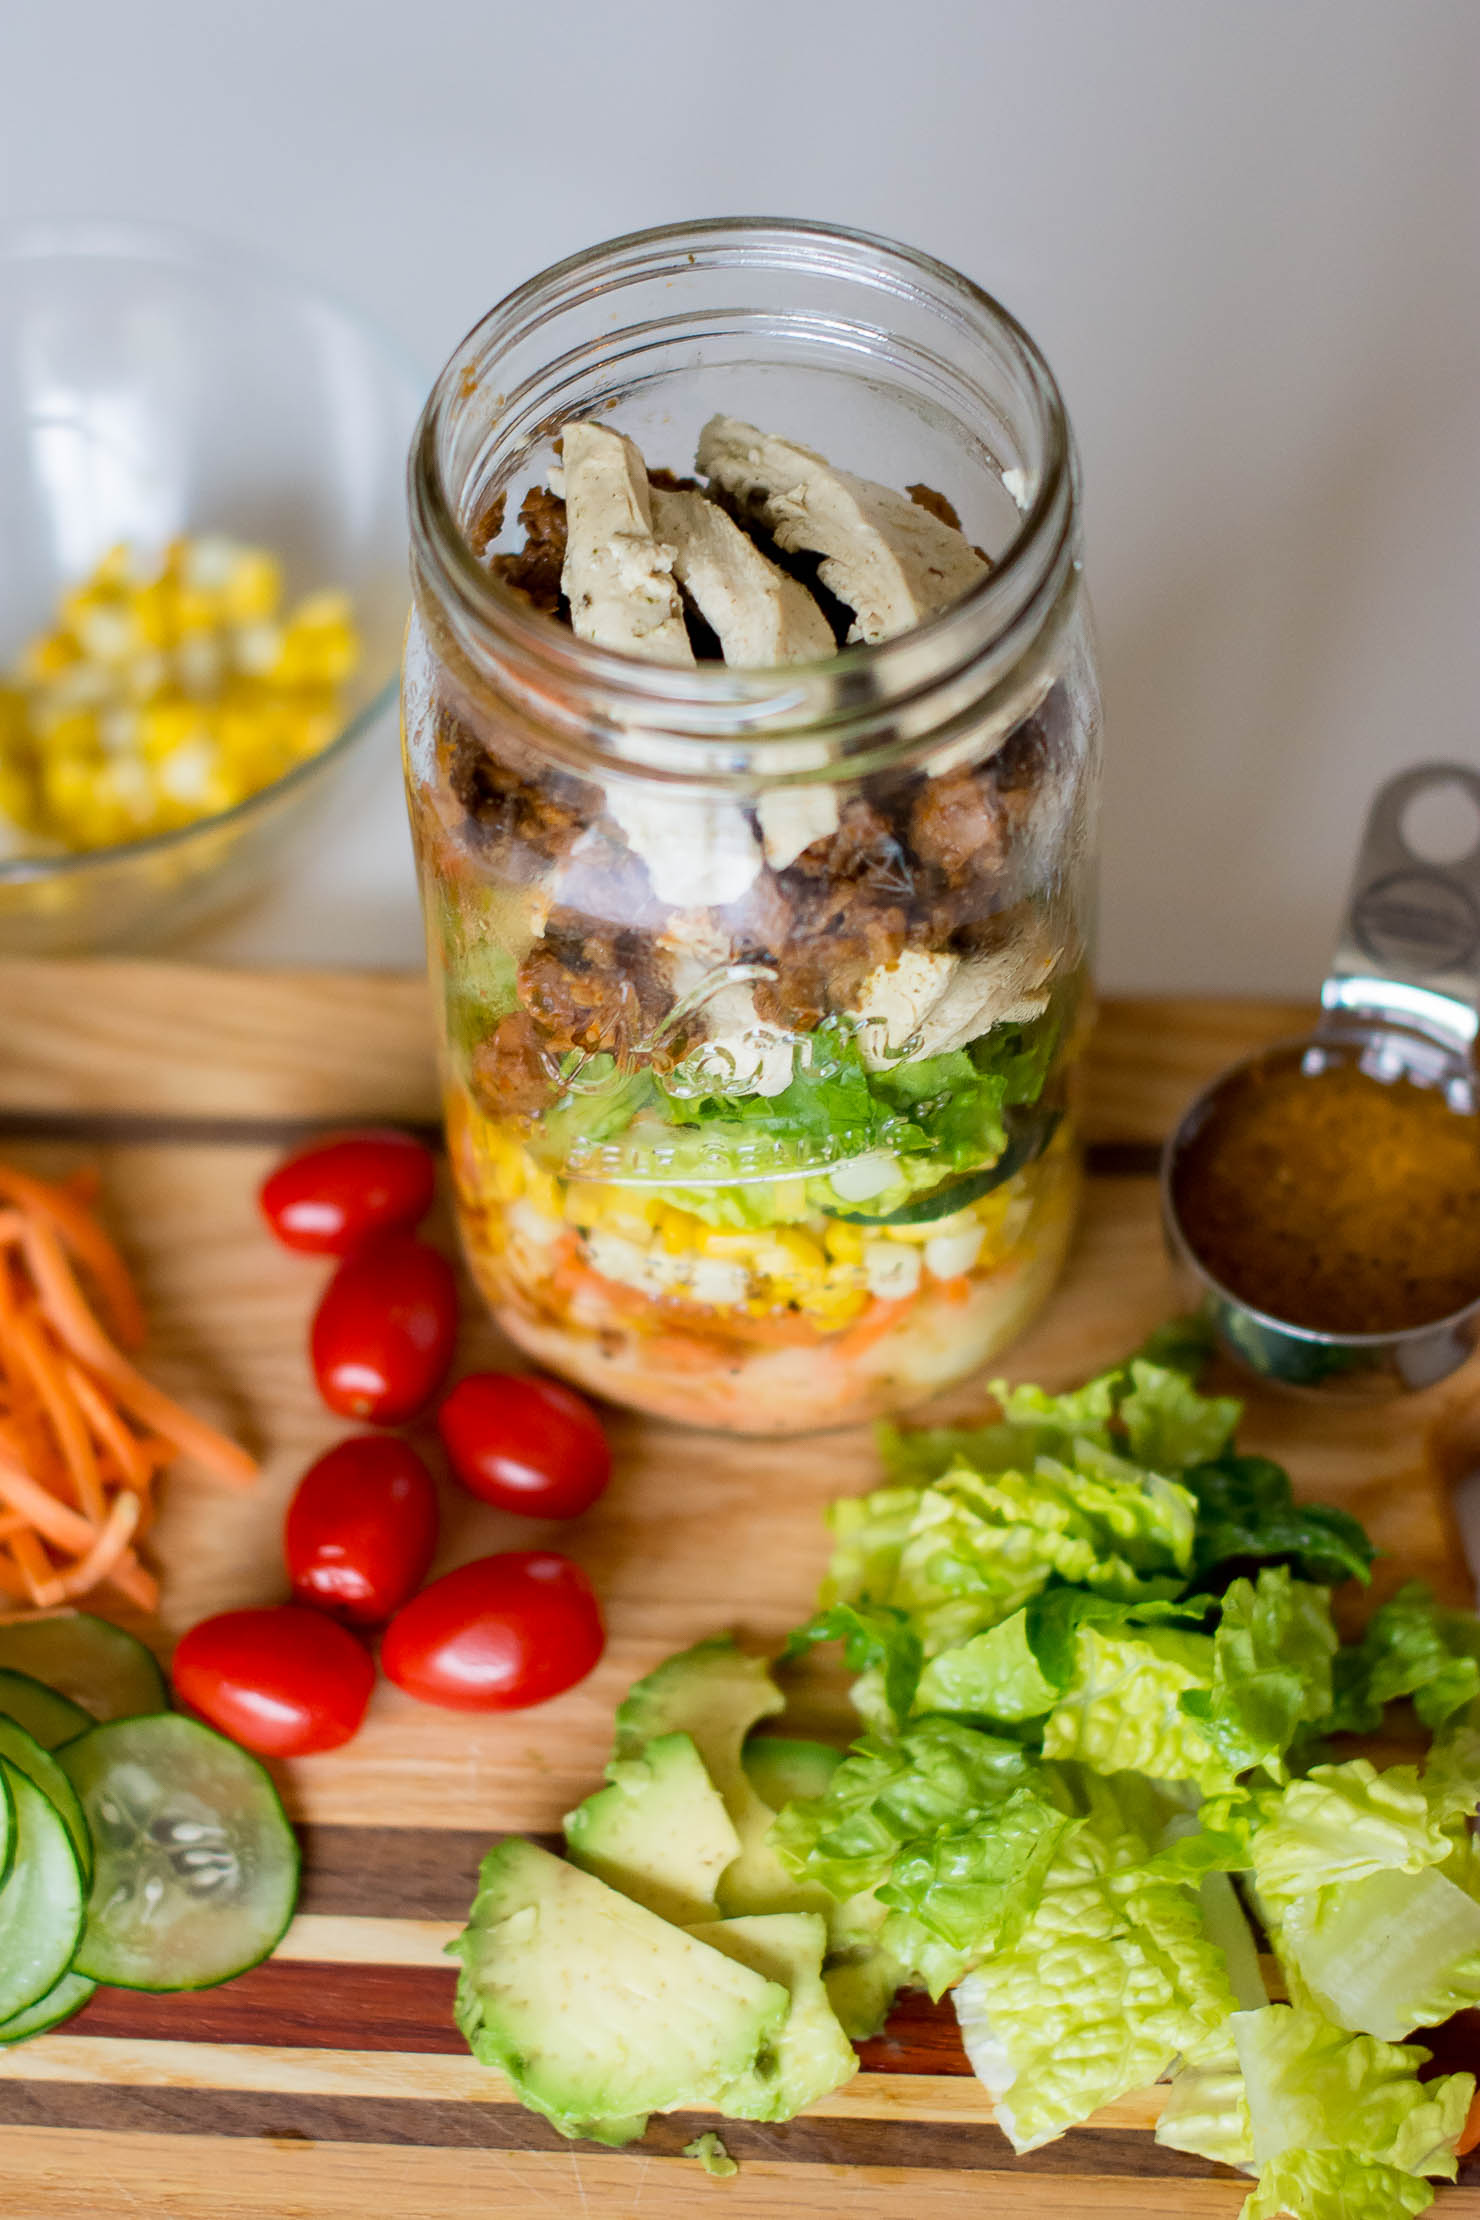 morning-star-chikn-strps-and-black-bean-crumbles-diy-mason-jar-salad-meatless-lunch